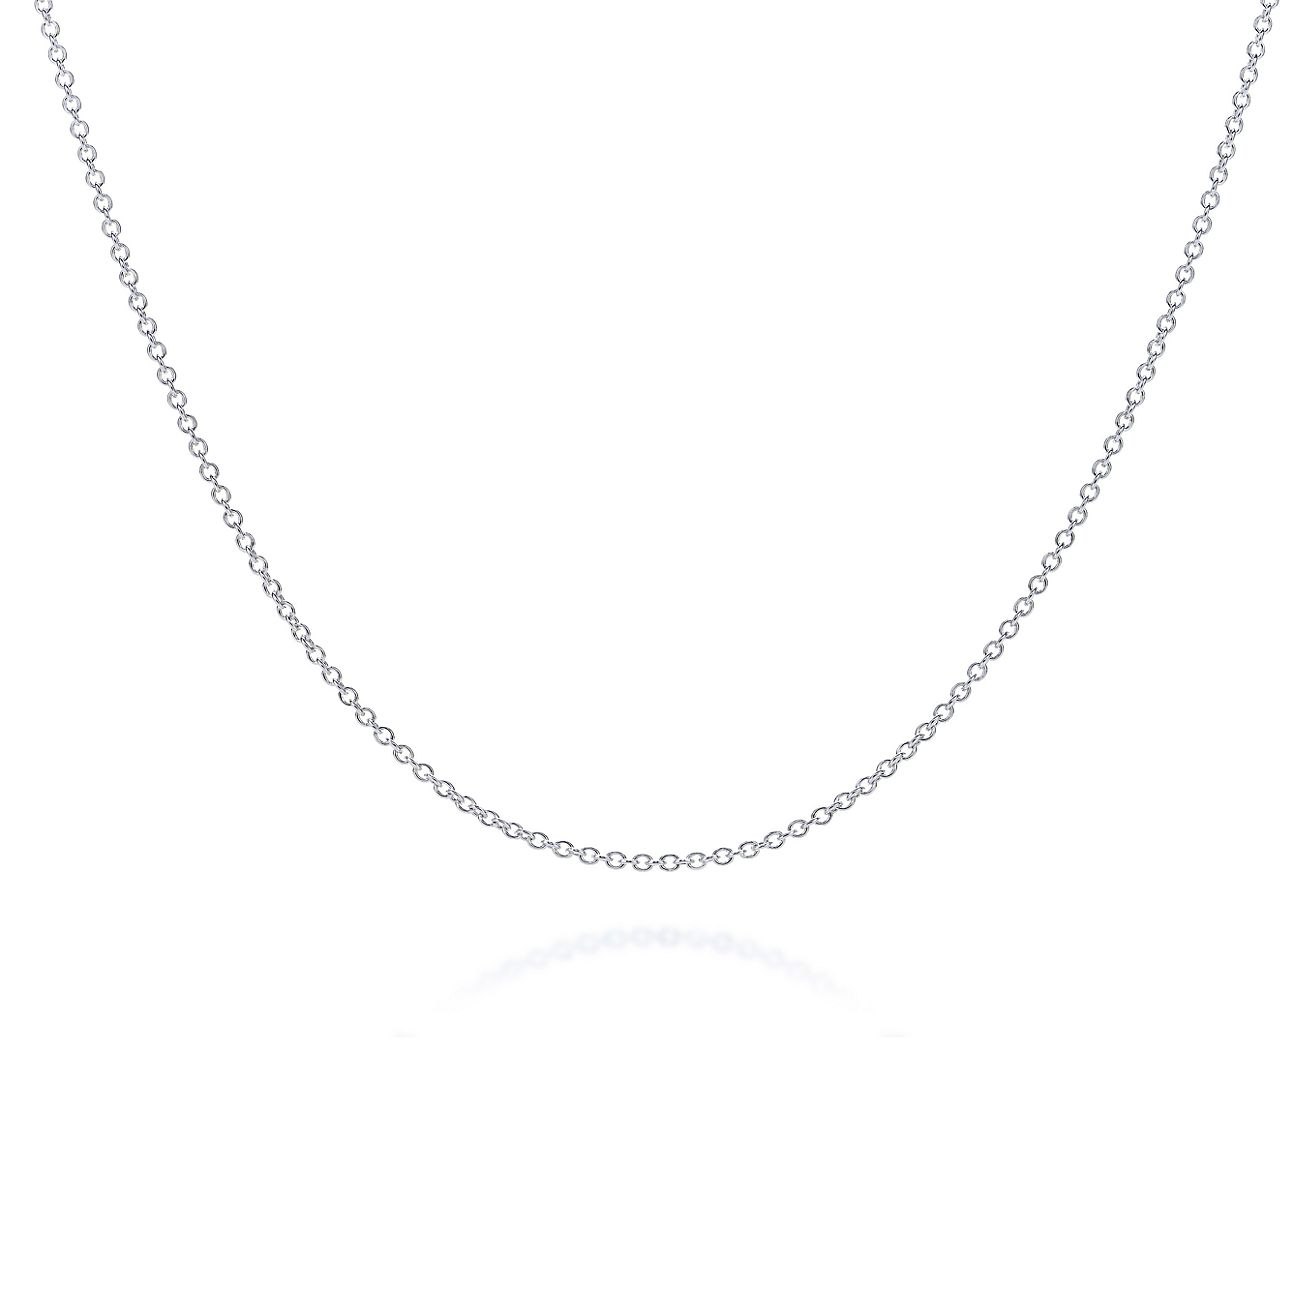 british gents silver sterling s heavy figaro jewellery men width wide necklace solid chain